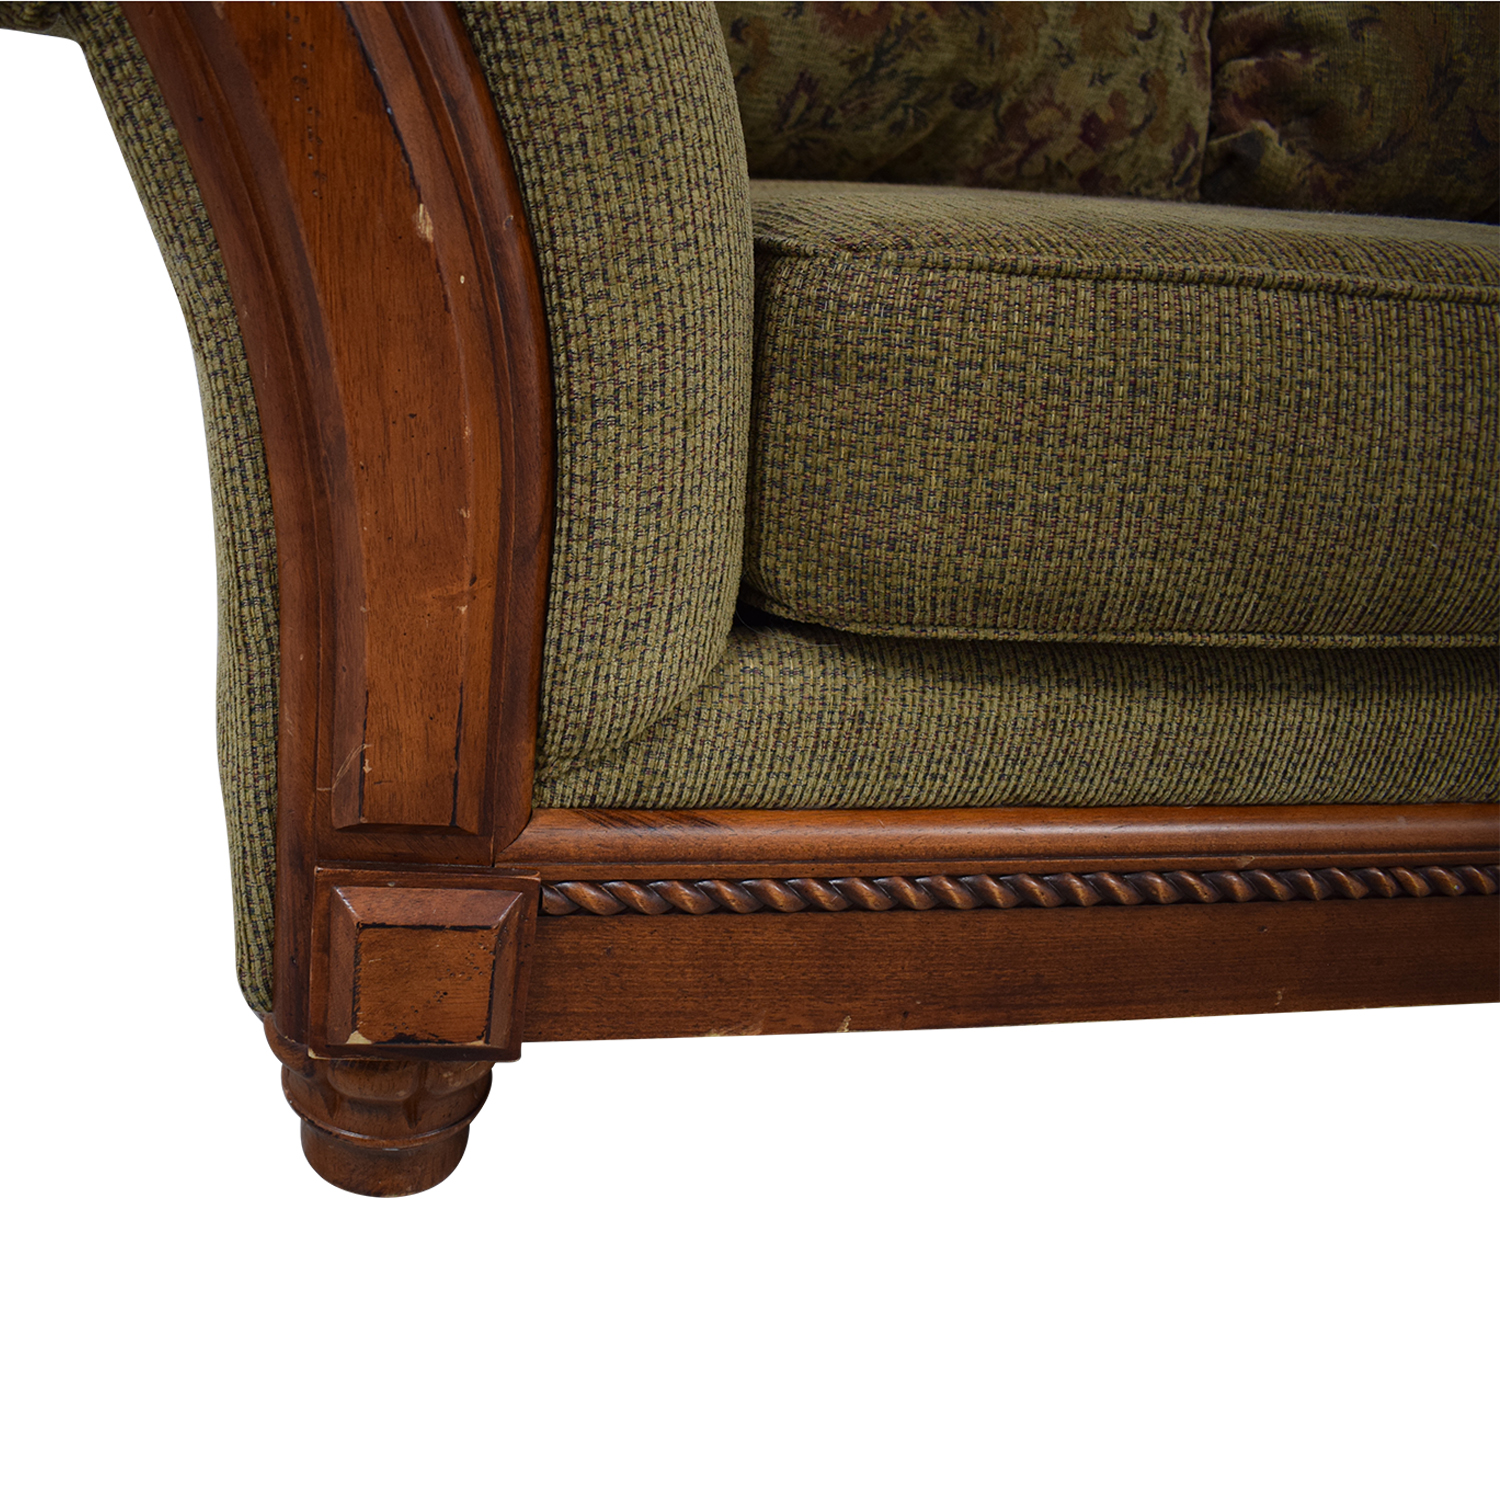 Klaussner Klaussner Upholstered Loveseat Couch Sofas